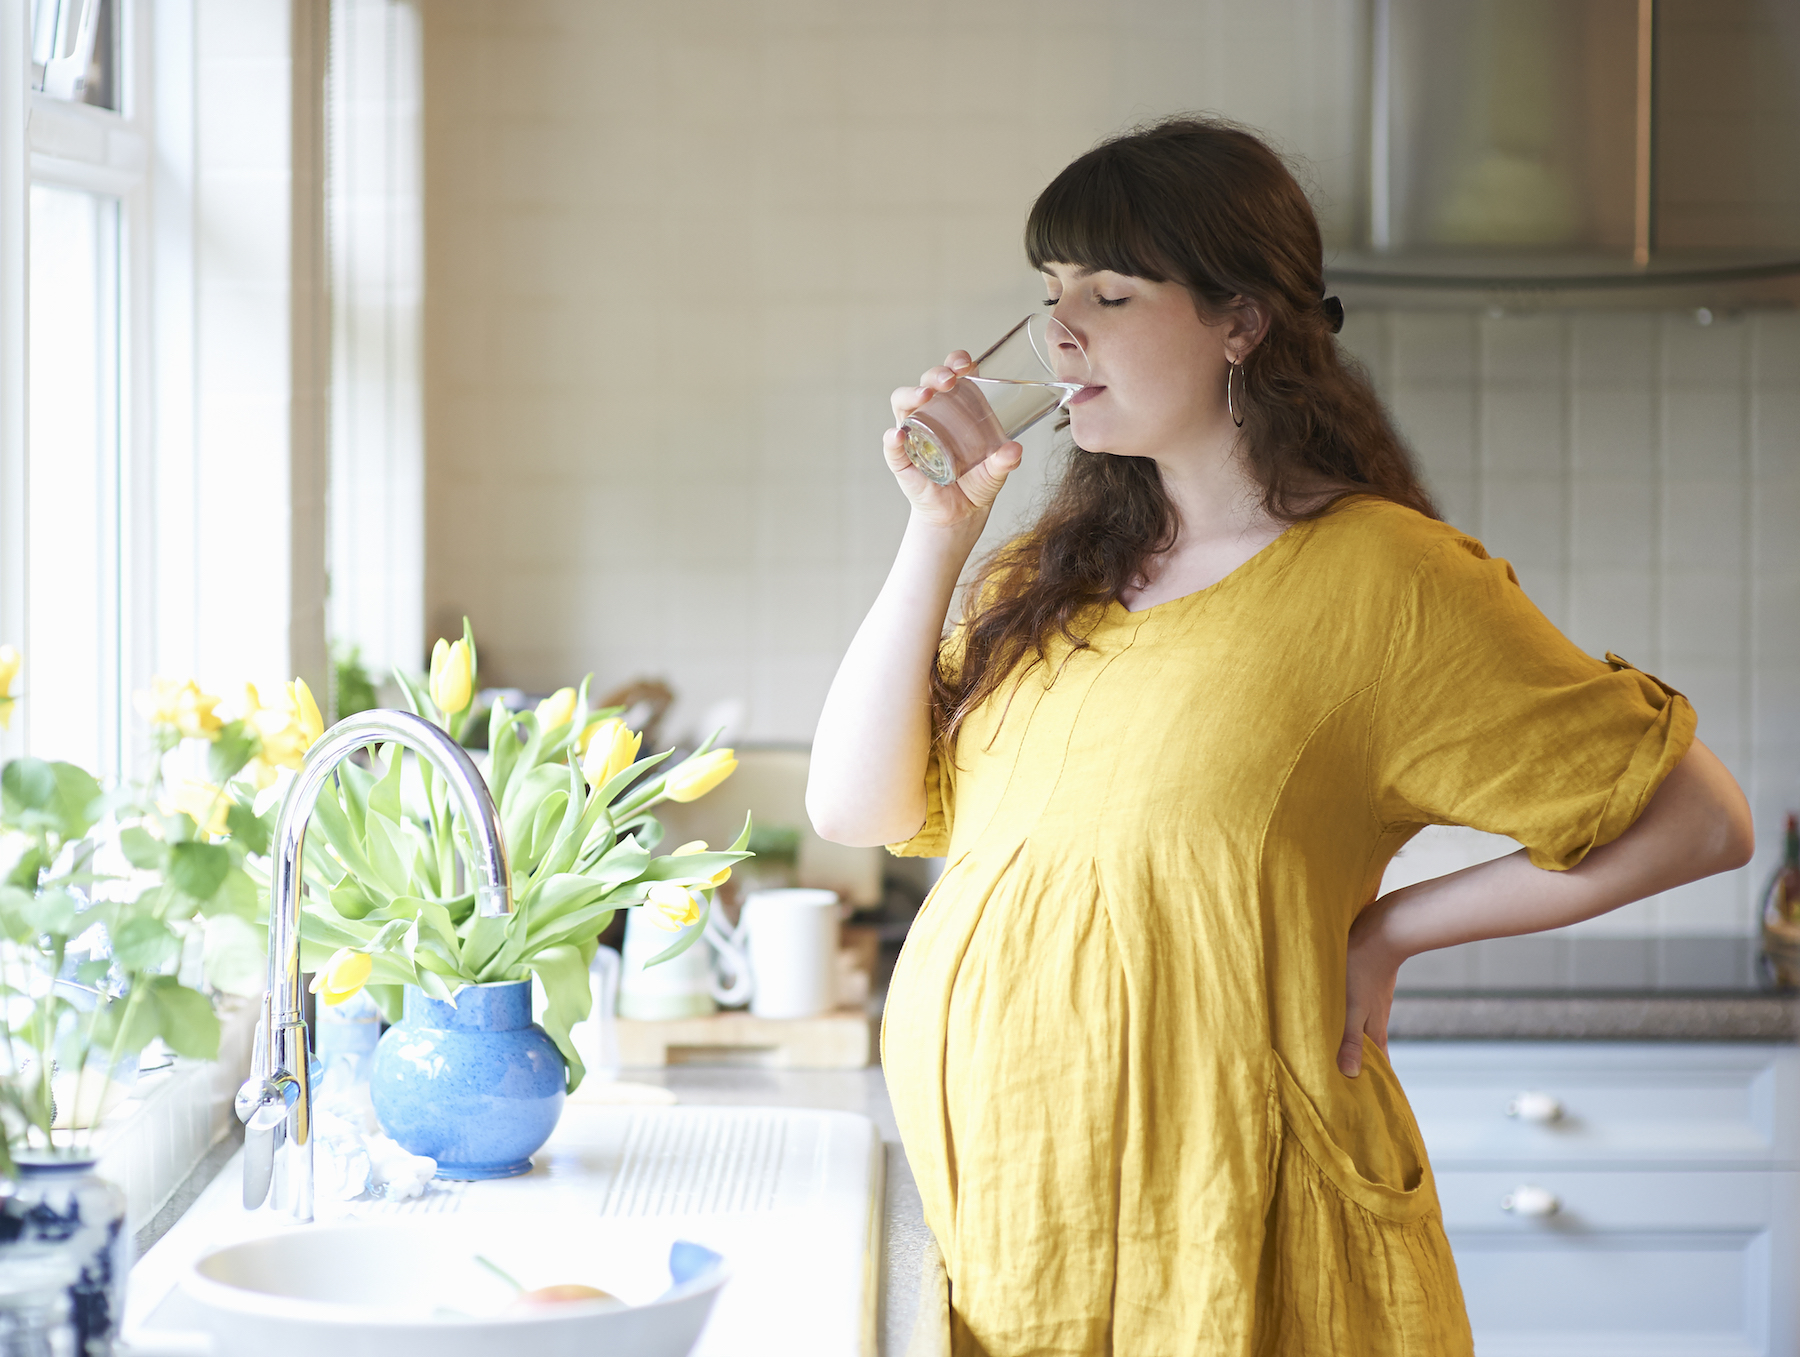 Pregnant woman drinking water in the kitchen